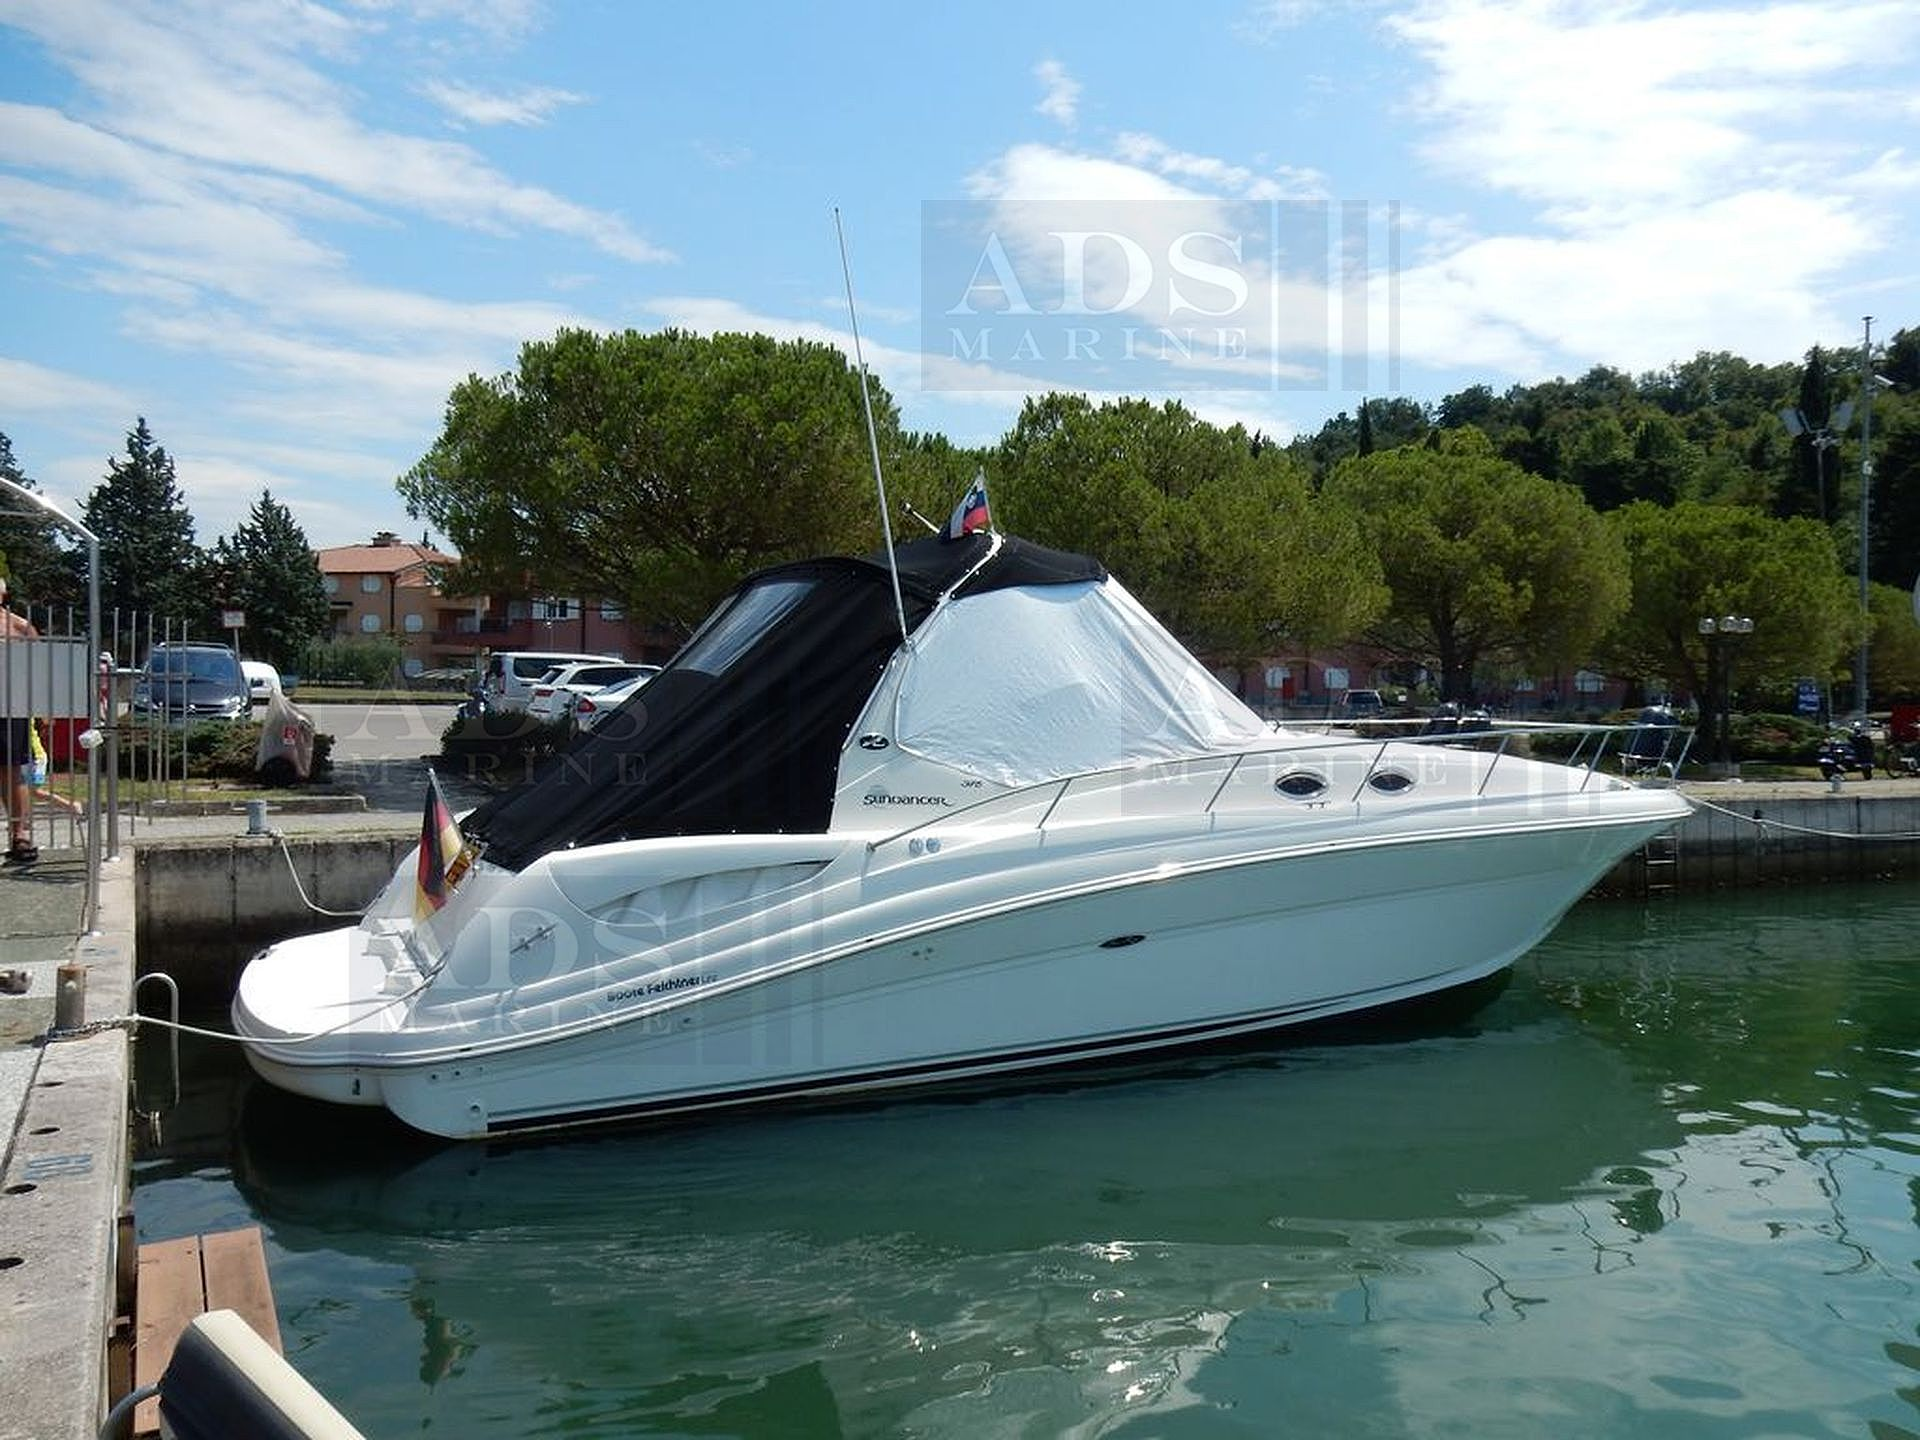 Sea Ray 375 Sundancer2004 for sale: 100450.-EUR